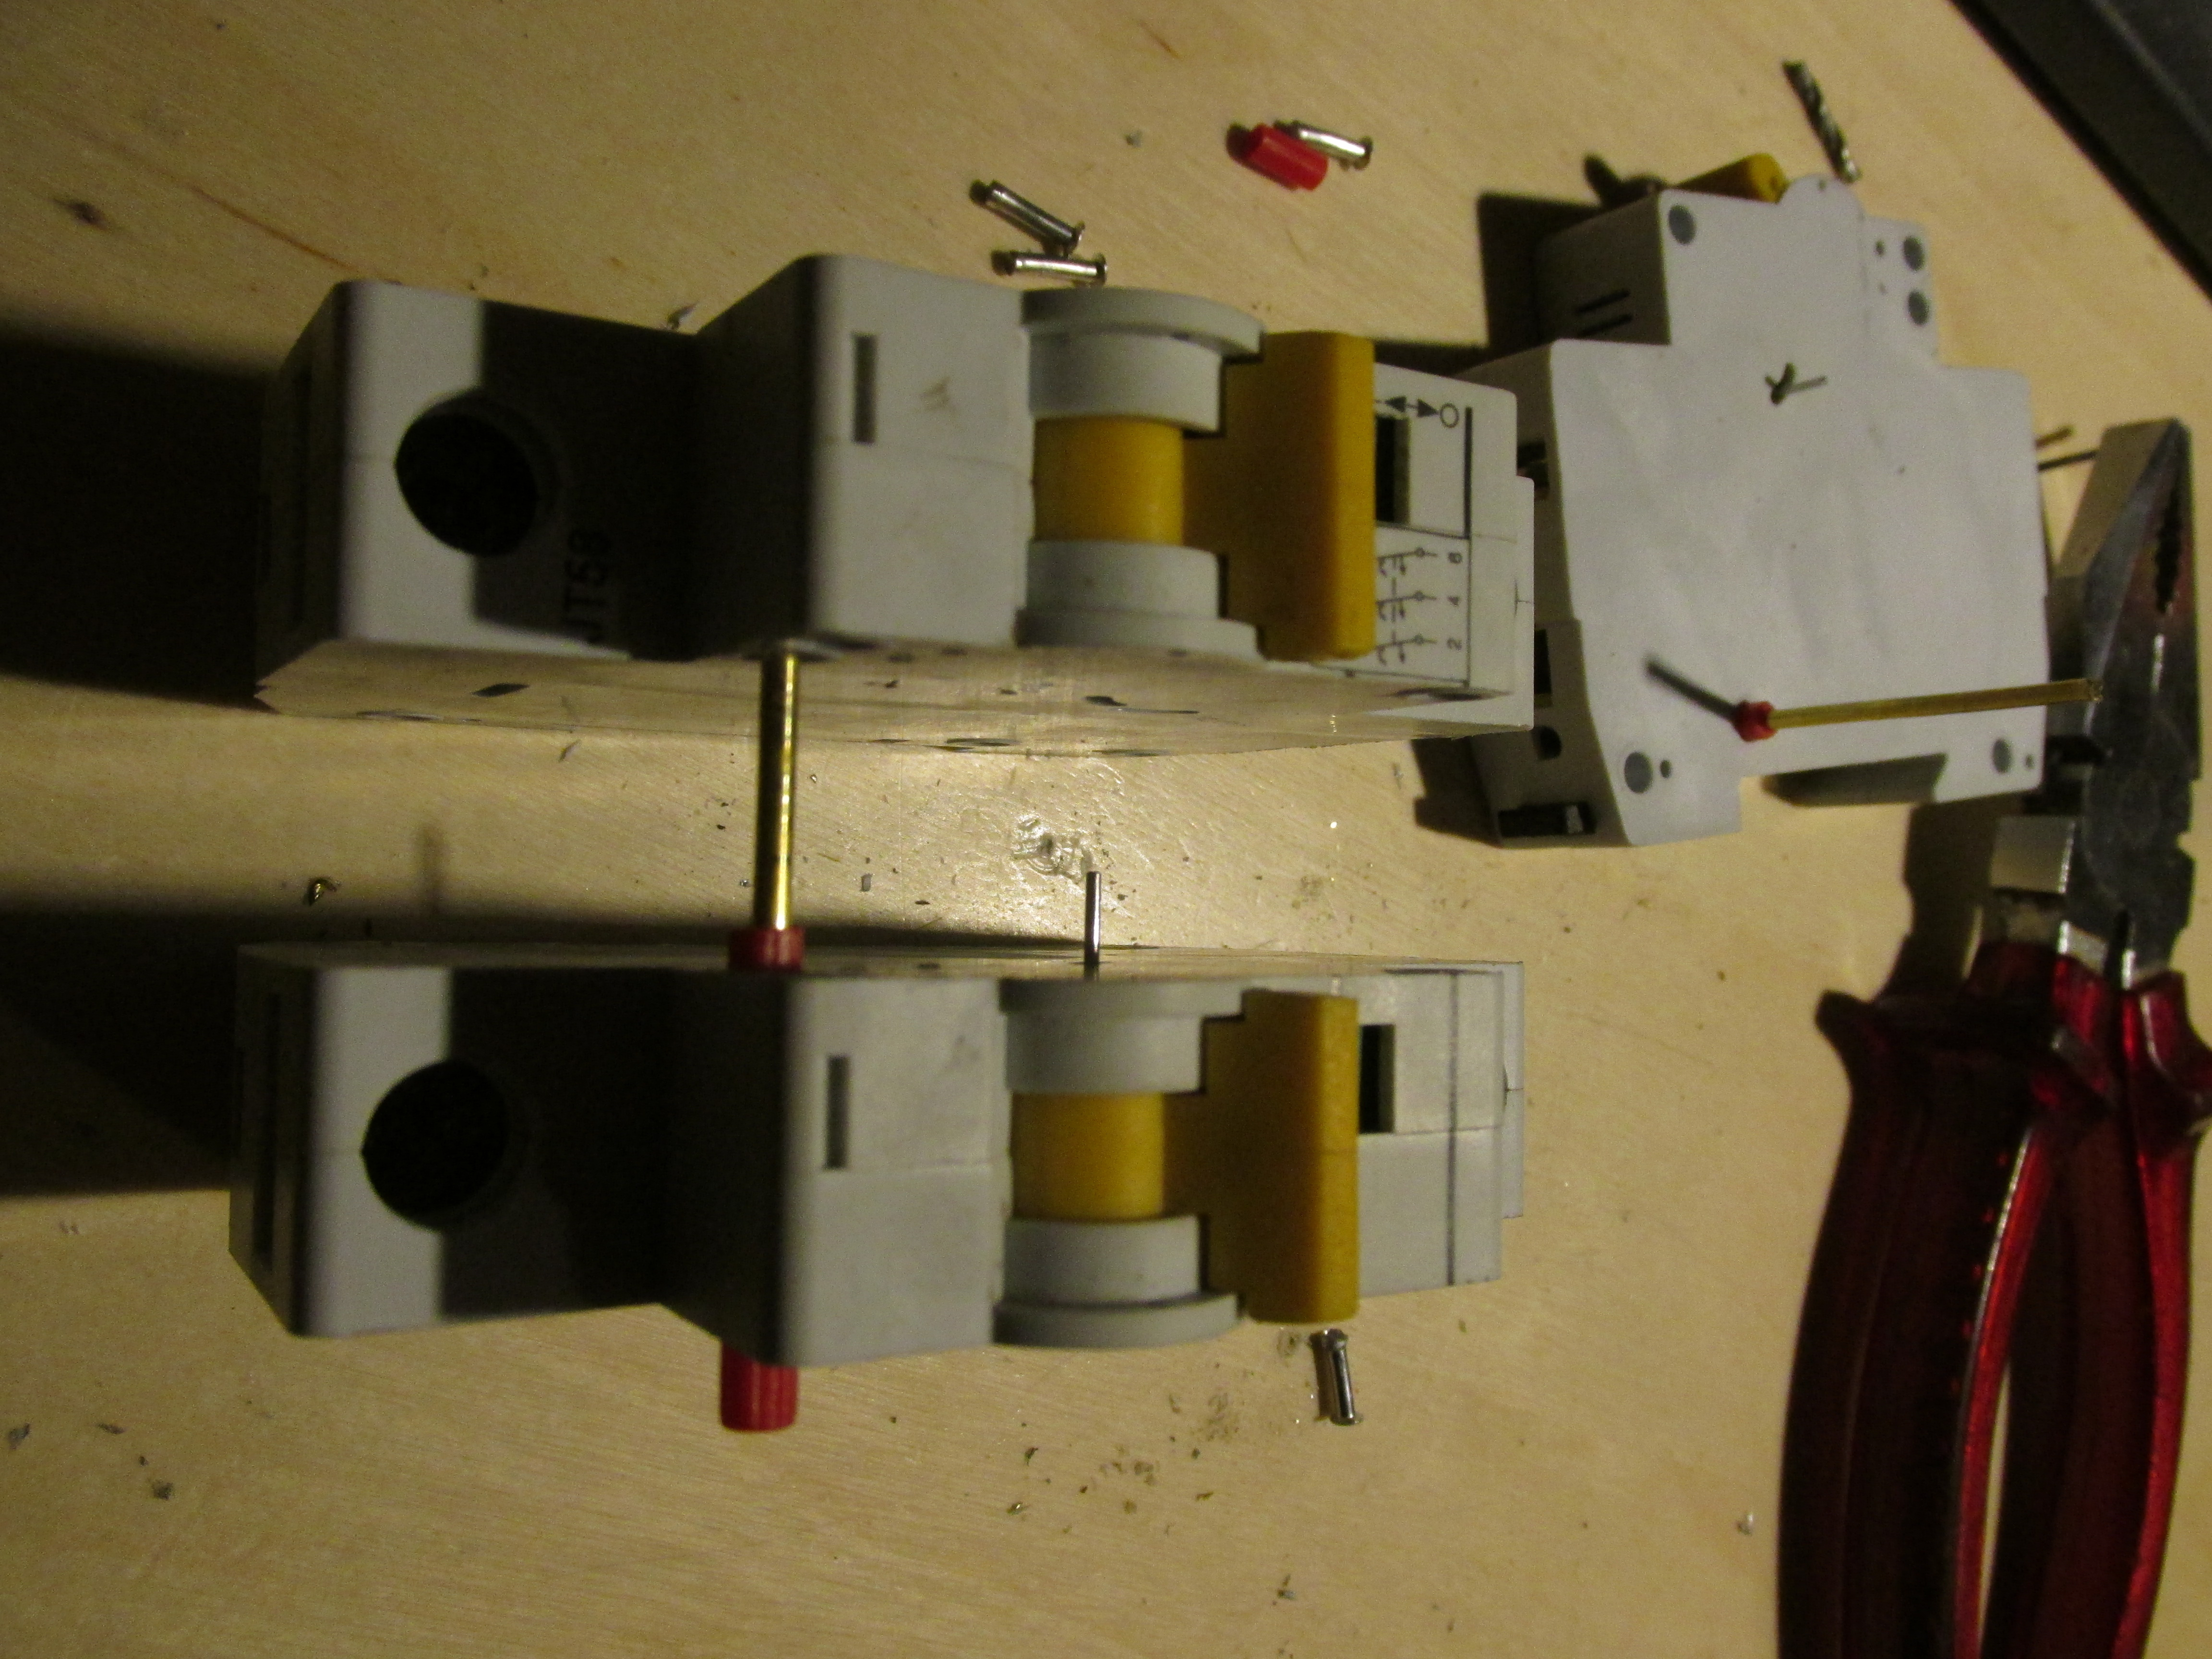 Circuit Breakers How They Work And Fail Krakonoorg Working Of After Pulling Them Apart The Rods Joining Individual Can Be Seen